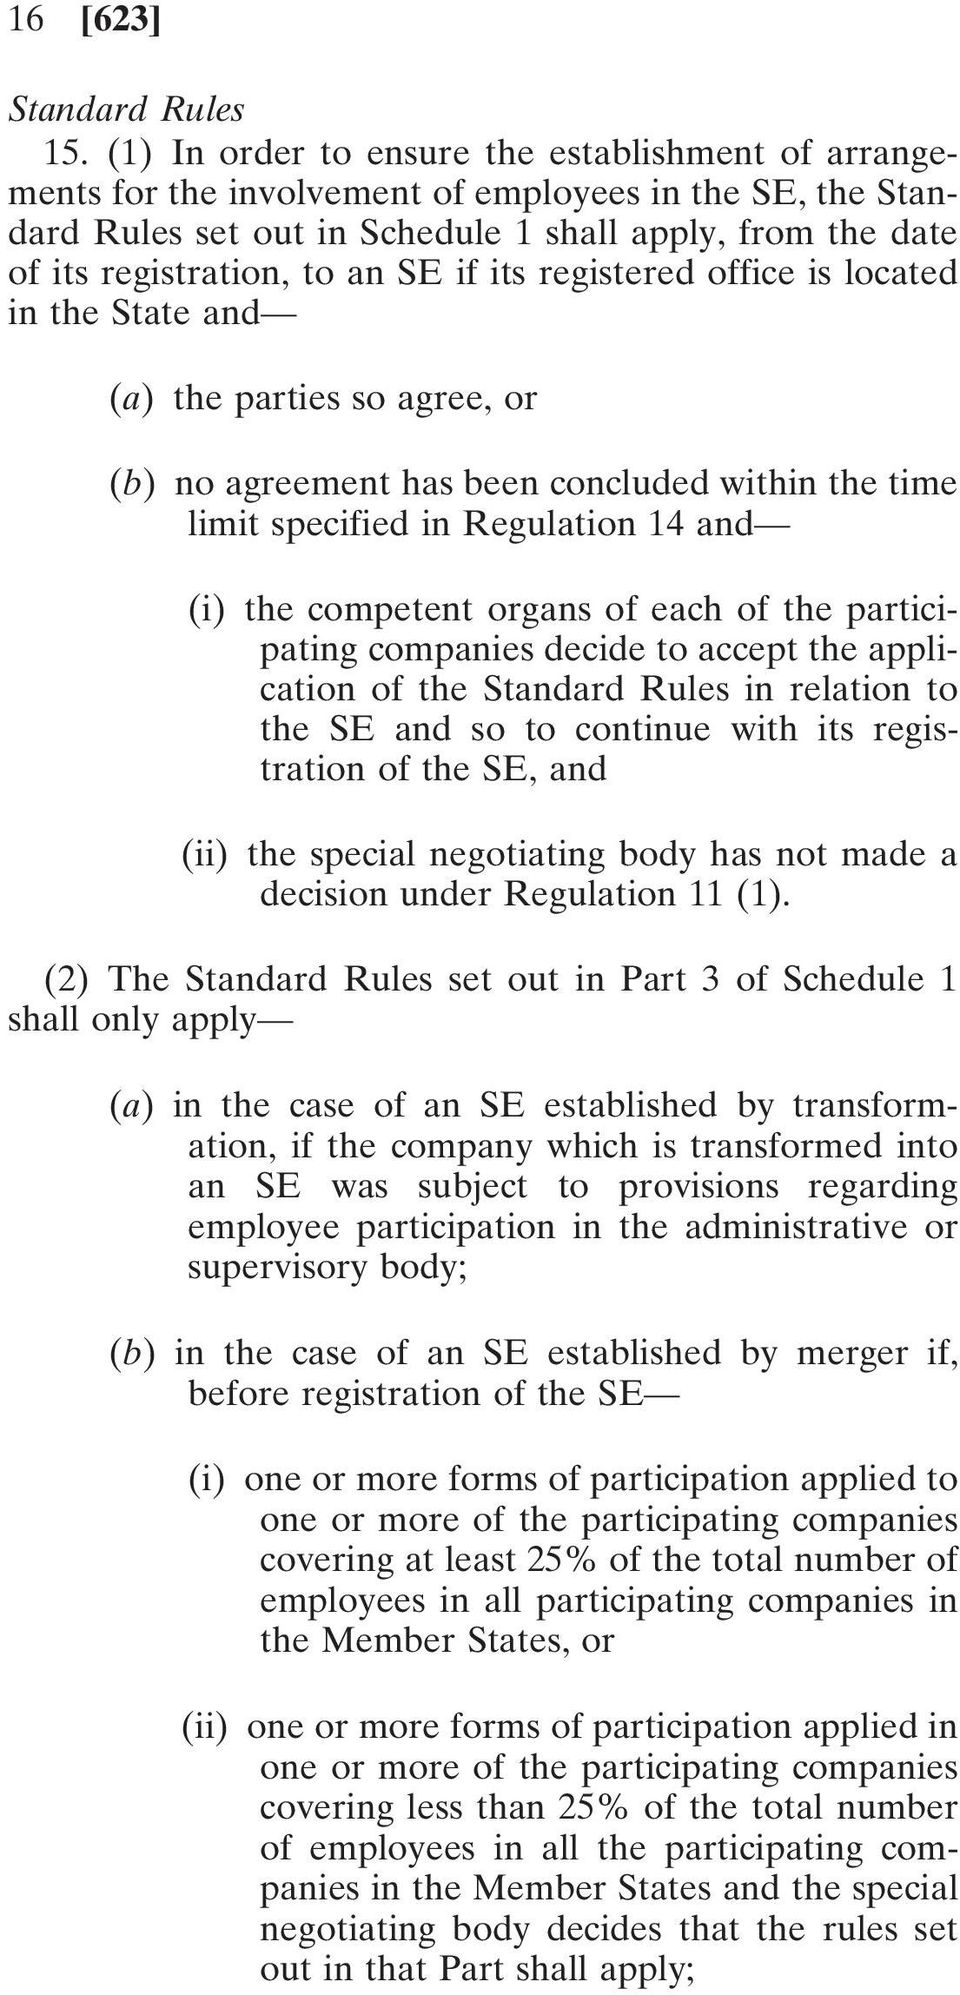 if its registered office is located in the State and (a) the parties so agree, or (b) no agreement has been concluded within the time limit specified in Regulation 14 and (i) the competent organs of